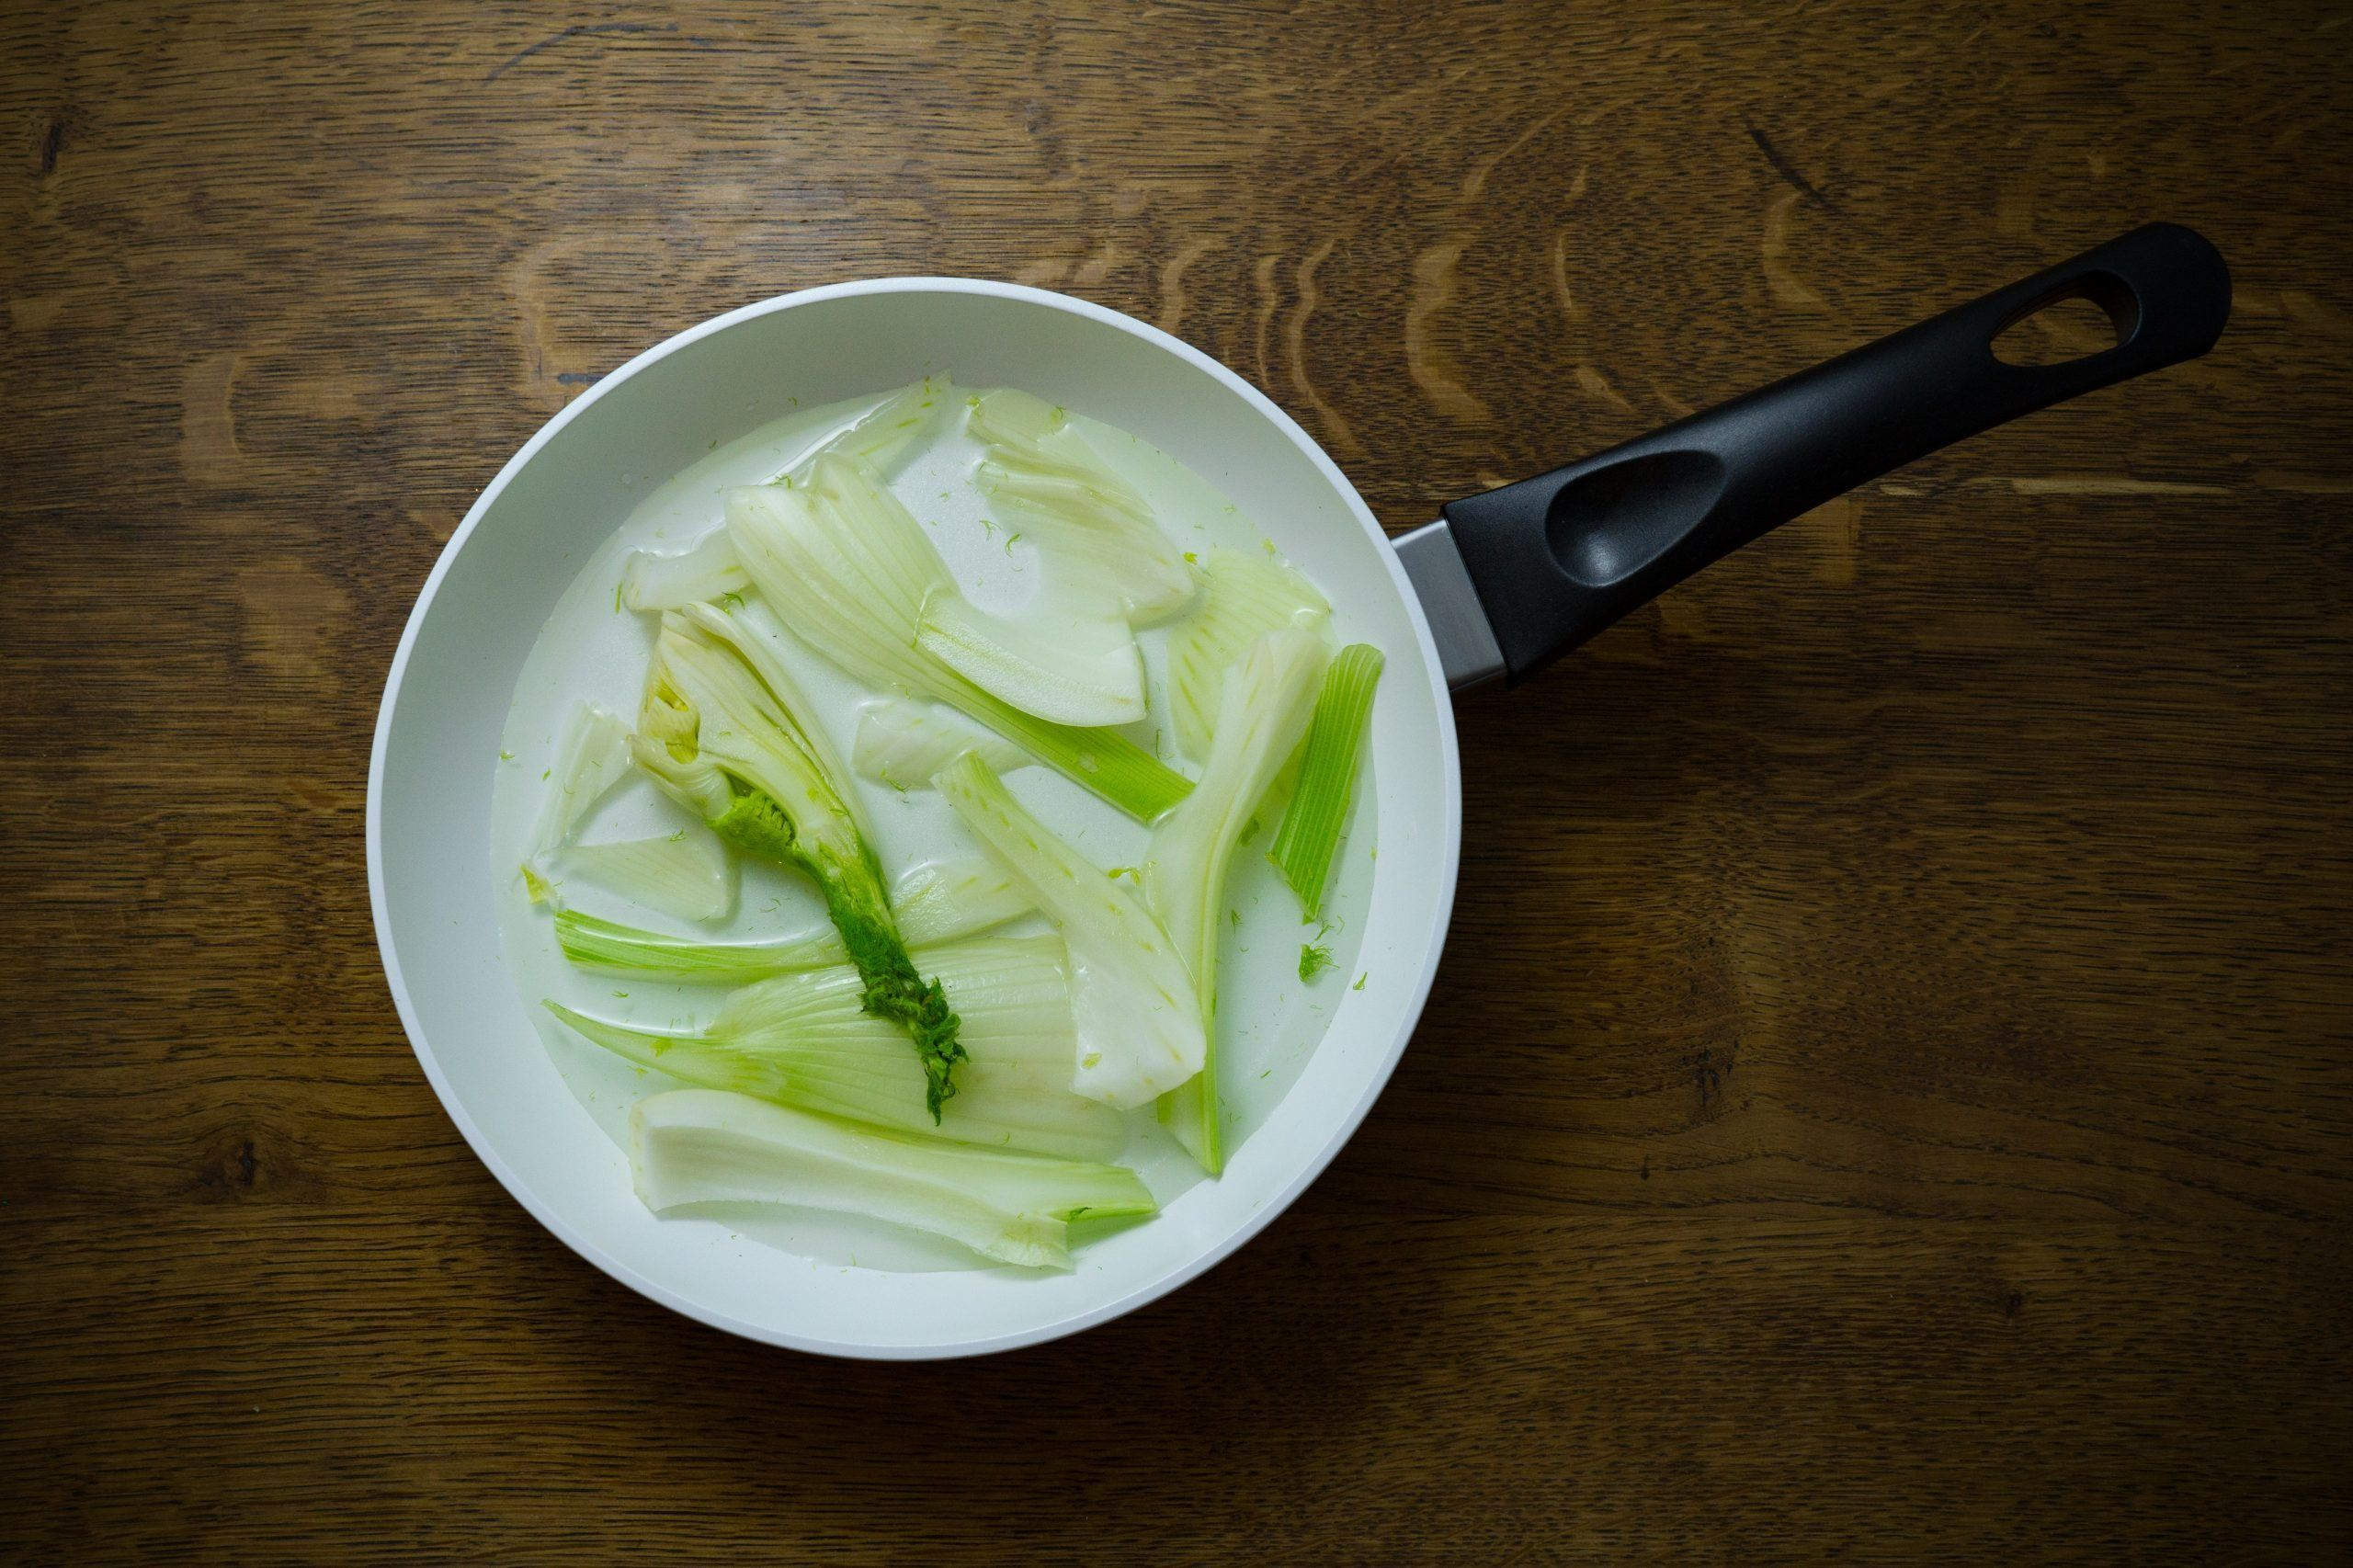 green leaves soup in the kitchenware